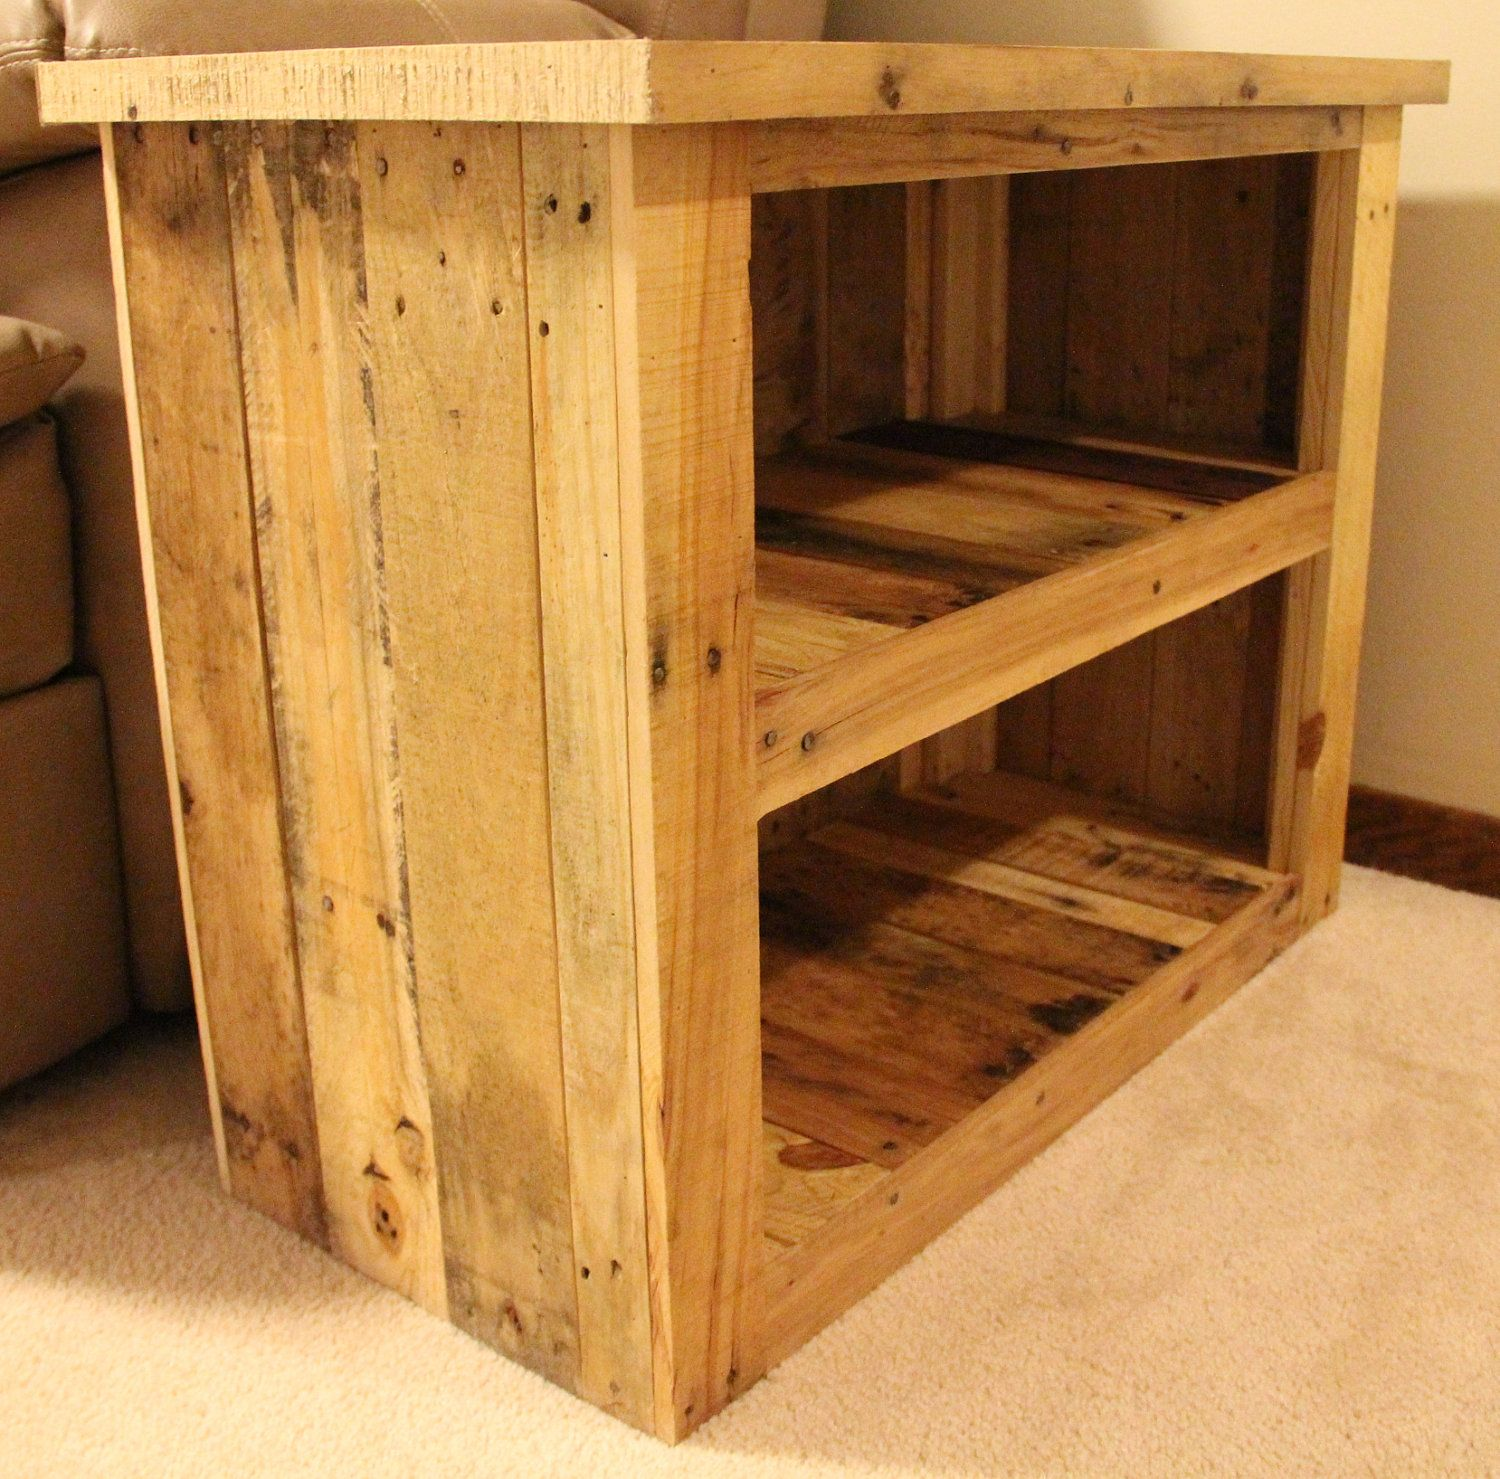 Side table made from shipping pallets 15000 via etsy side table made from shipping pallets 15000 via etsy geotapseo Choice Image